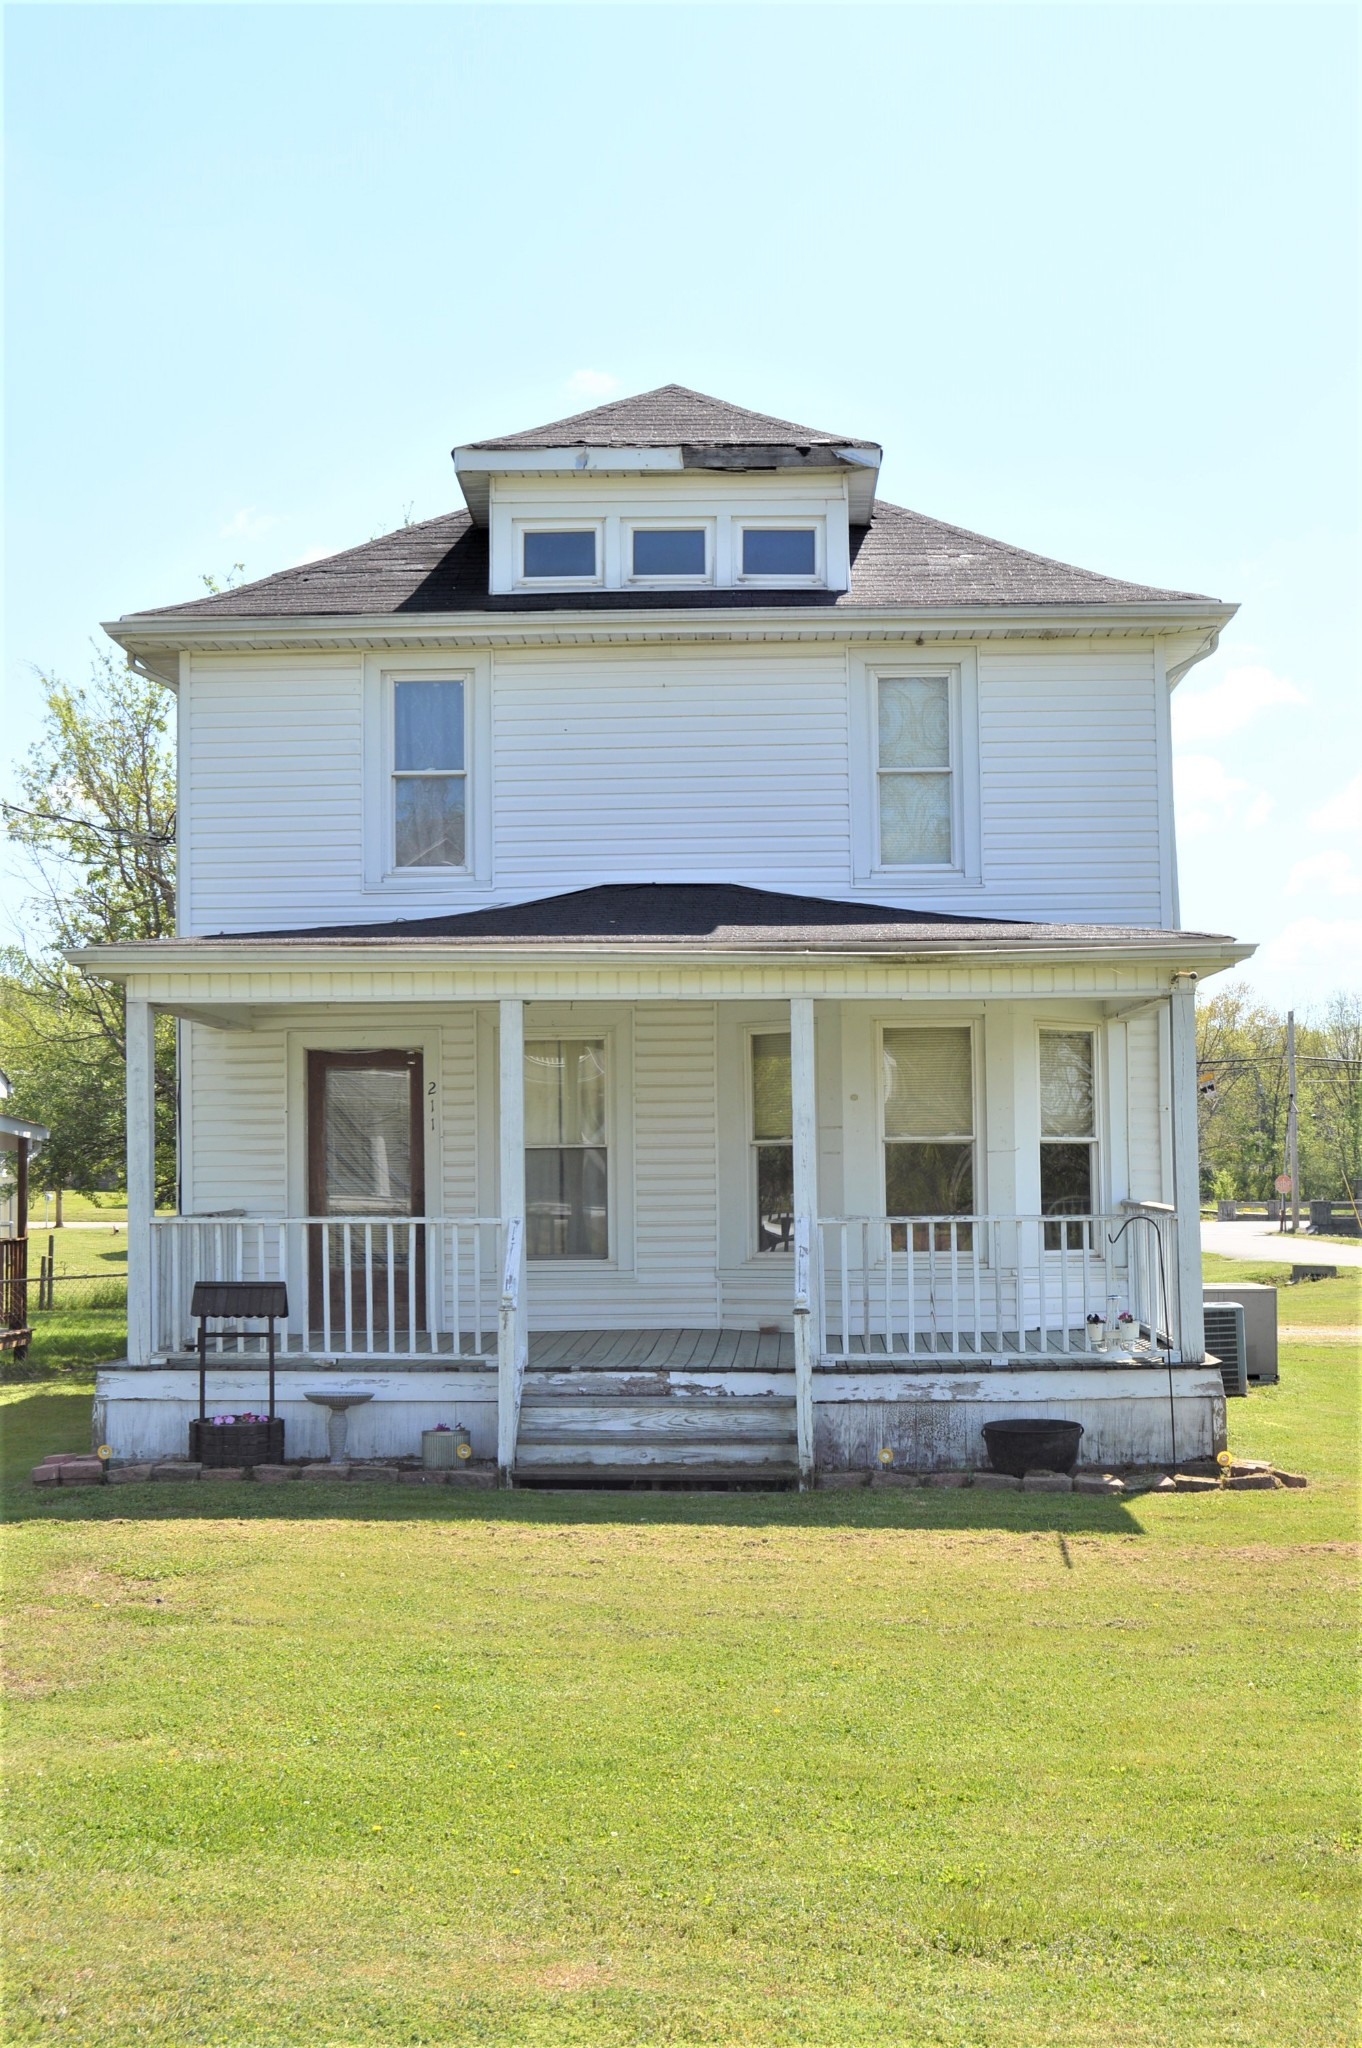 211 S Mulberry St Property Photo - Cornersville, TN real estate listing